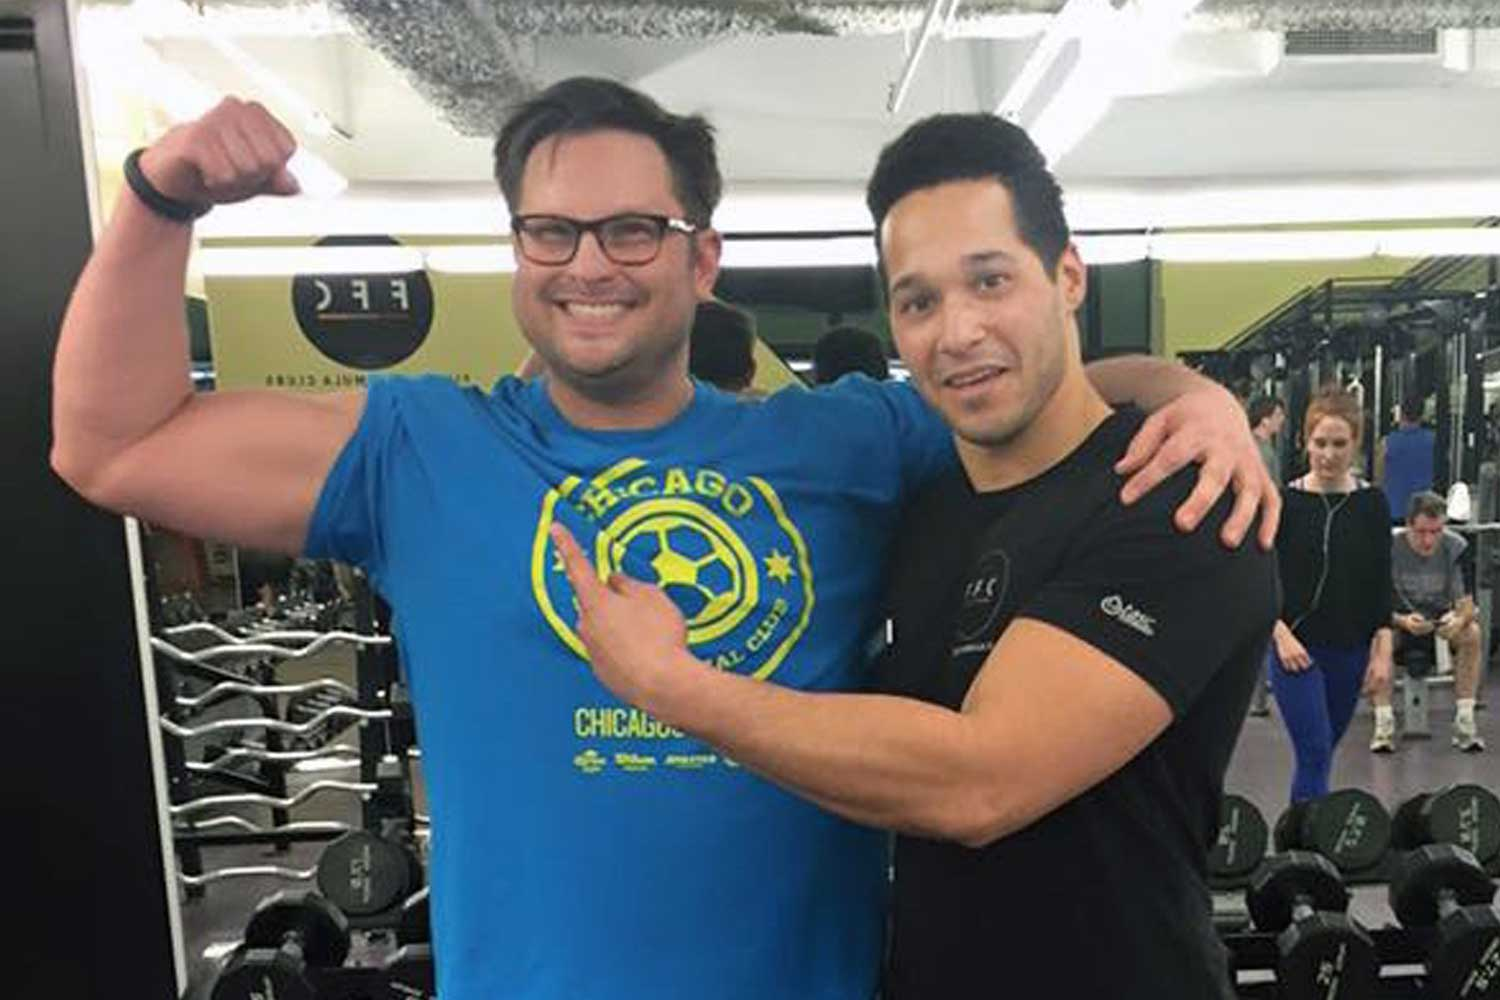 How FFC Union Station helped me get fit and become a beast by 40